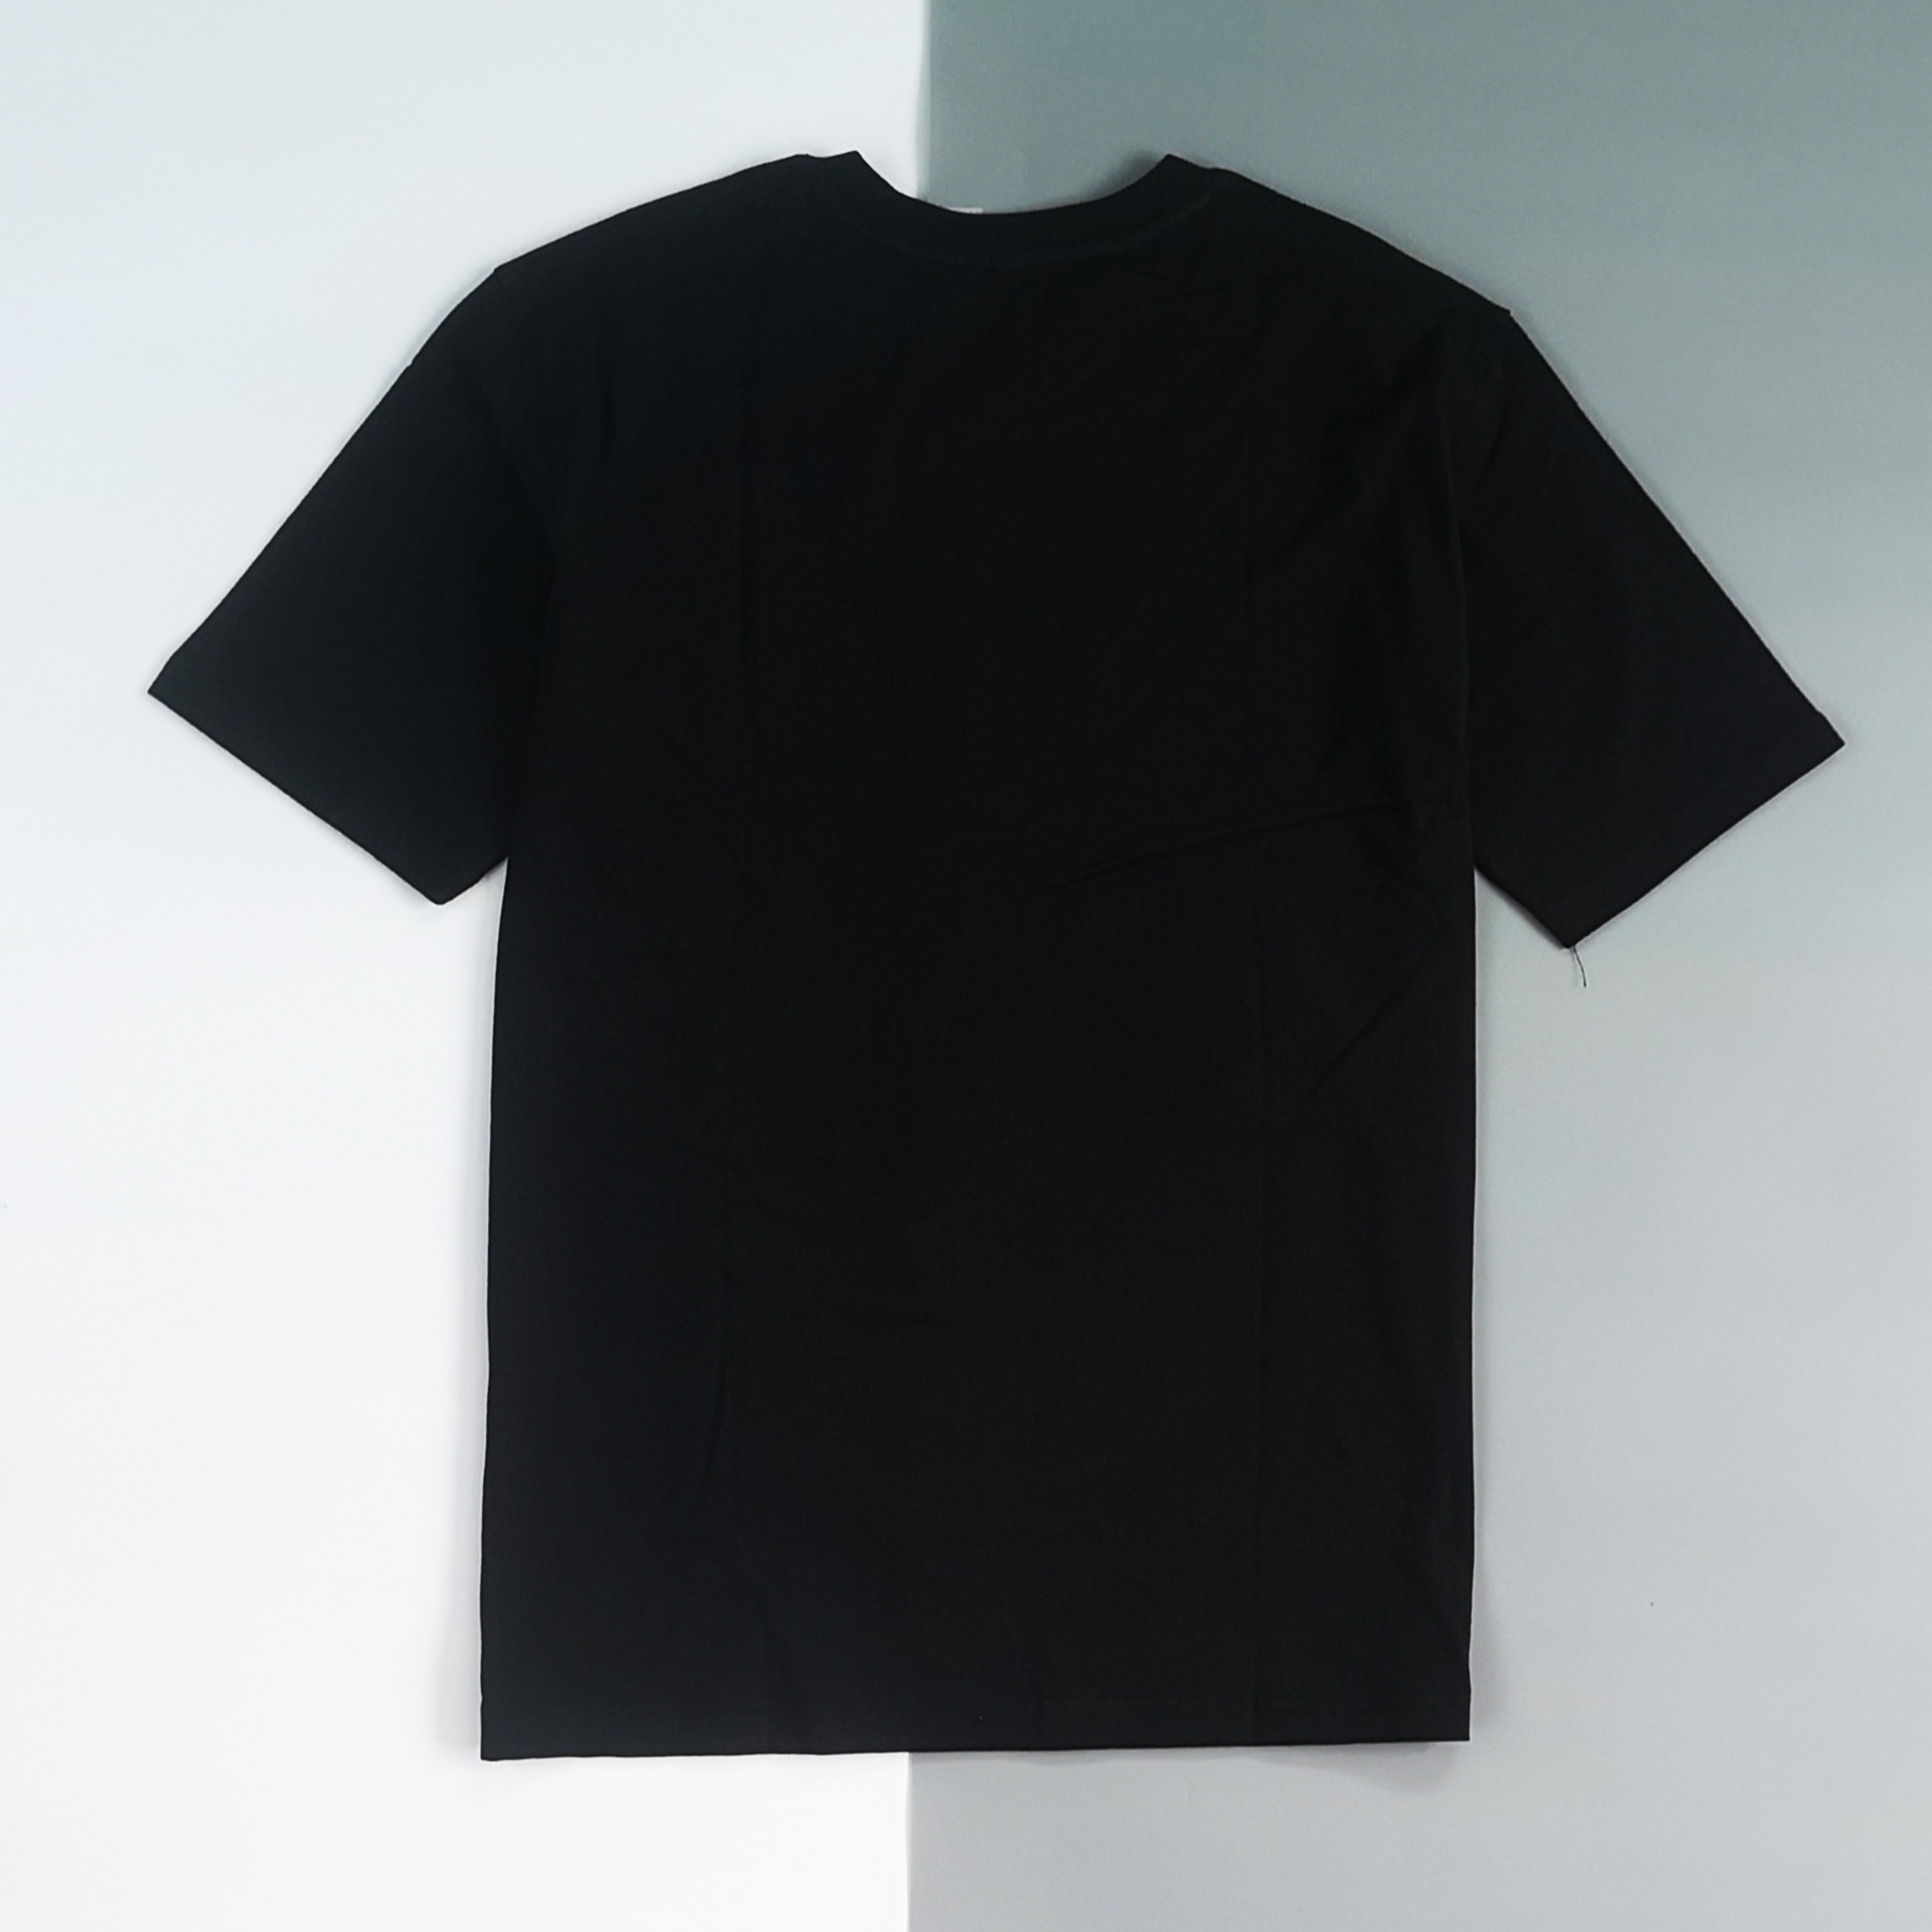 Áo thun unisex cotton 100% in chữ You are not a wave, you are part of the ocean (Black Tee)